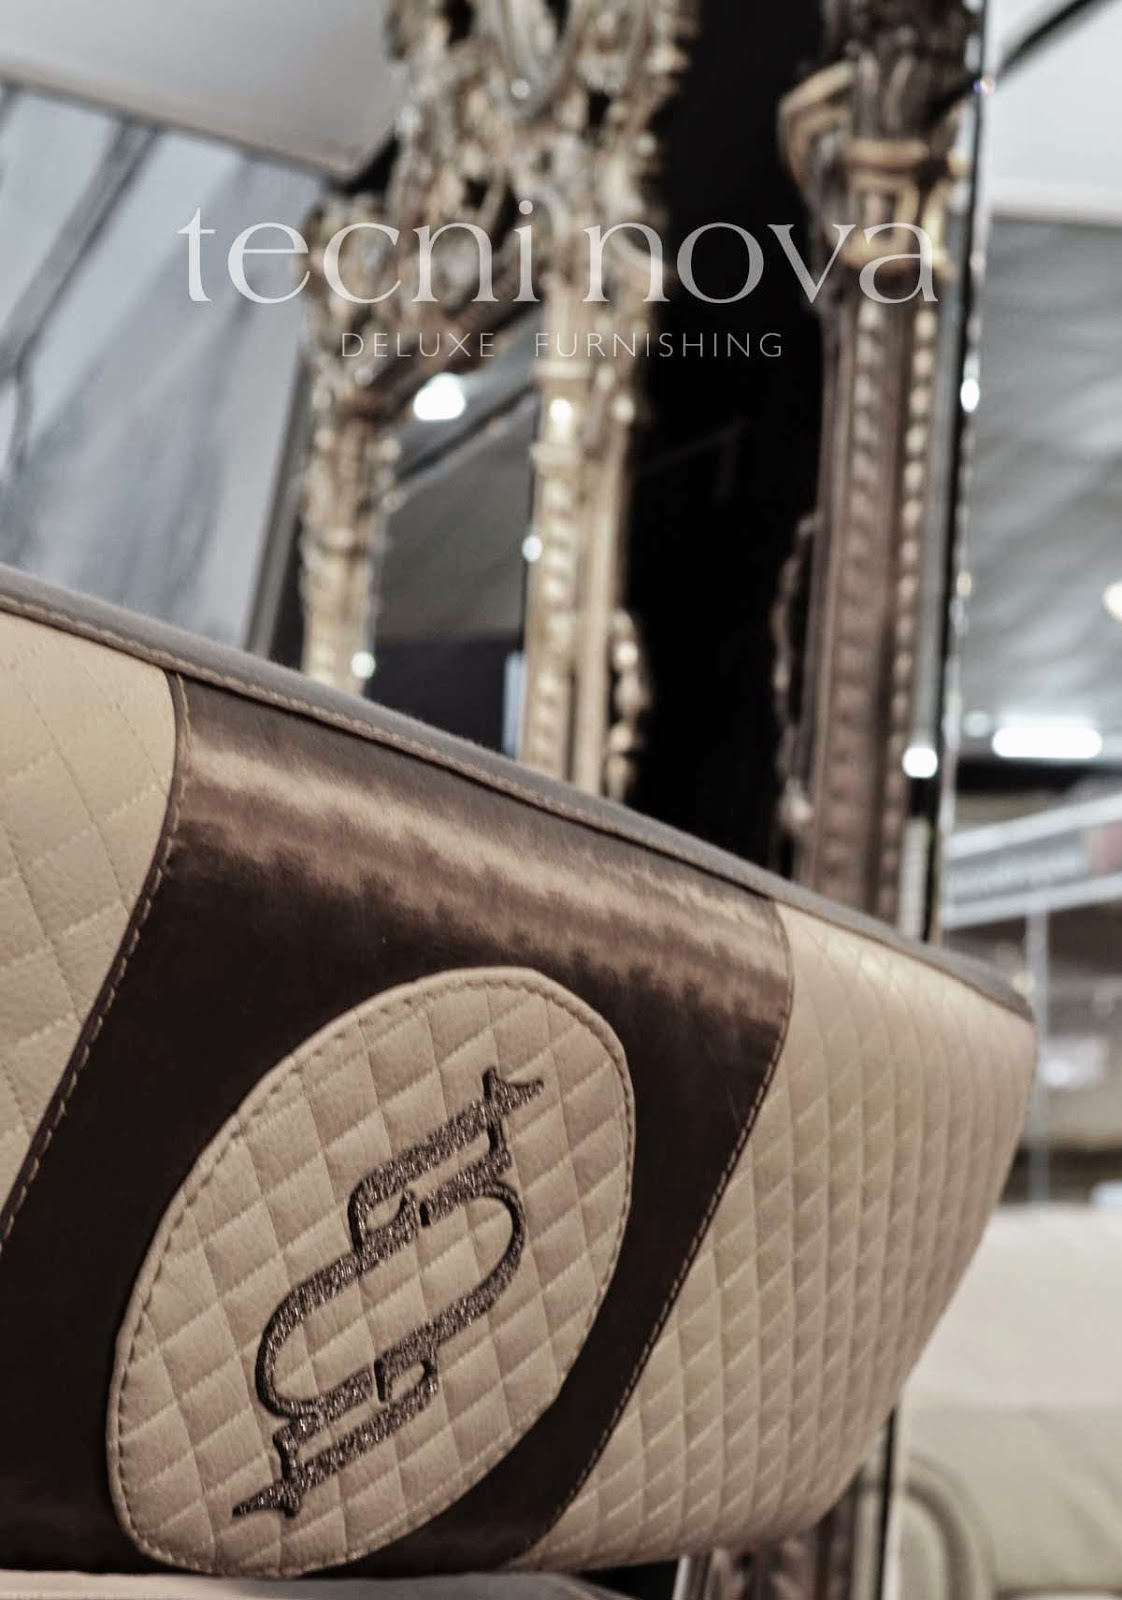 tecninova-deluxe-furnishing-luxury-furniture-muebles-lujo-diseño-country-style-countryside-cottage-campigna-deco-interior-design-estilo- diseño-vanguardia-trend-innovation-FMyecla-2014-upholstery-tapizado